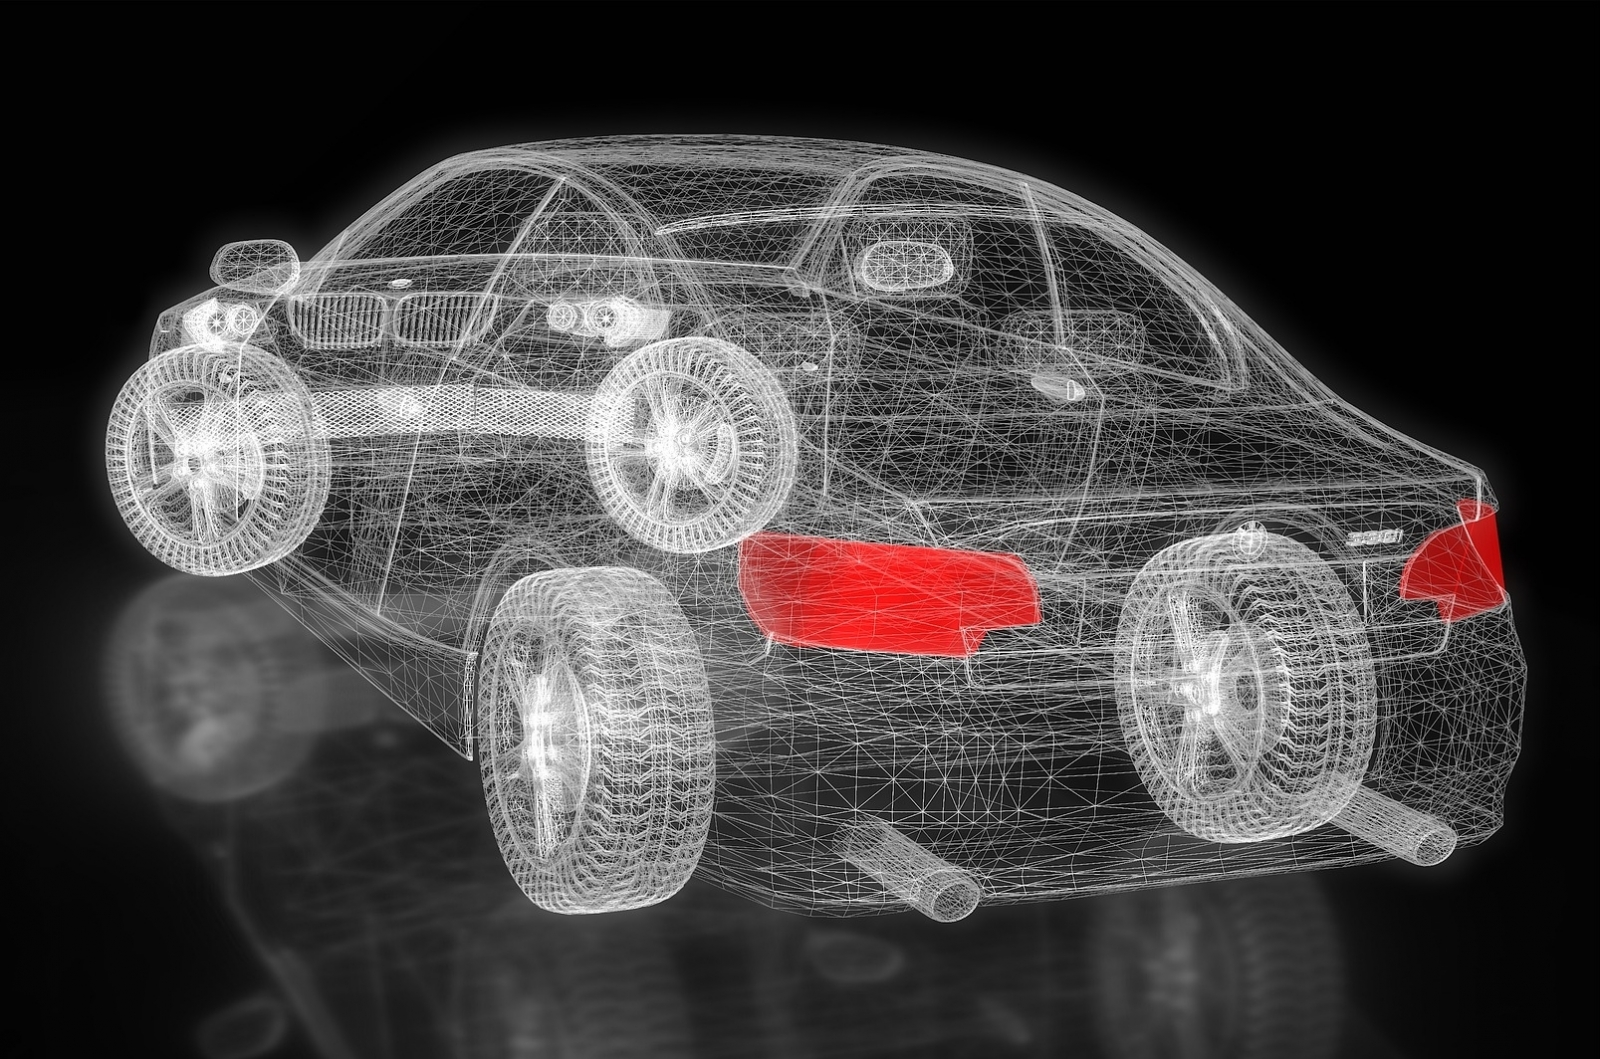 Comfort and safety in next generation of data driven automobiles